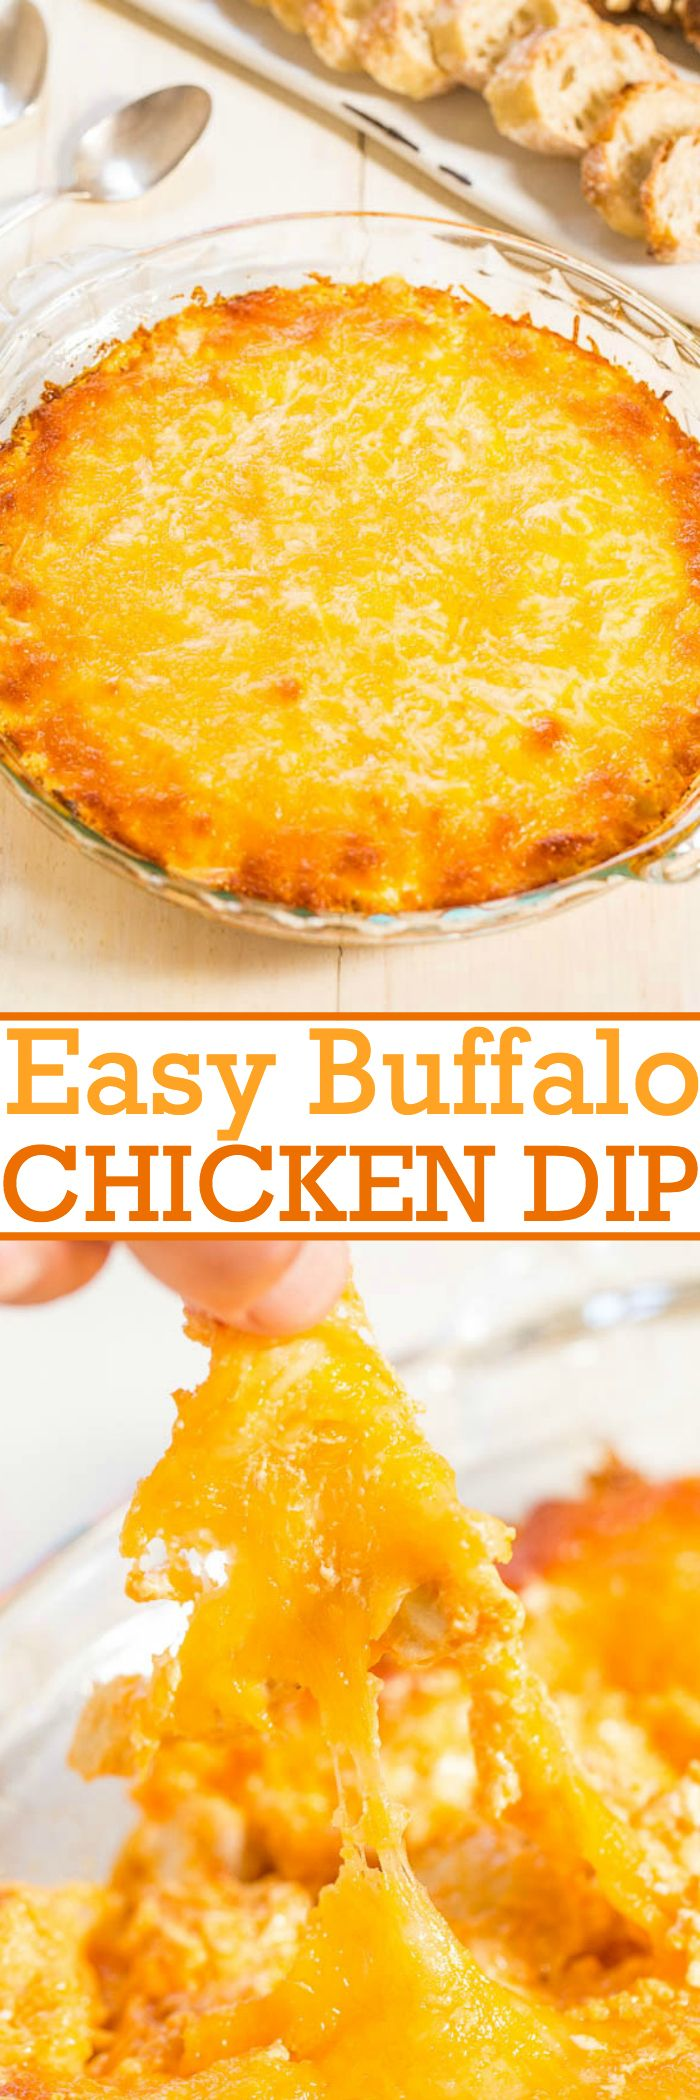 Easy Buffalo Chicken Dip -  Cheese, cream cheese, and chicken combined in a fast and easy dip!! Total comfort food that'll be devoured at any party!! Great for game day parties!